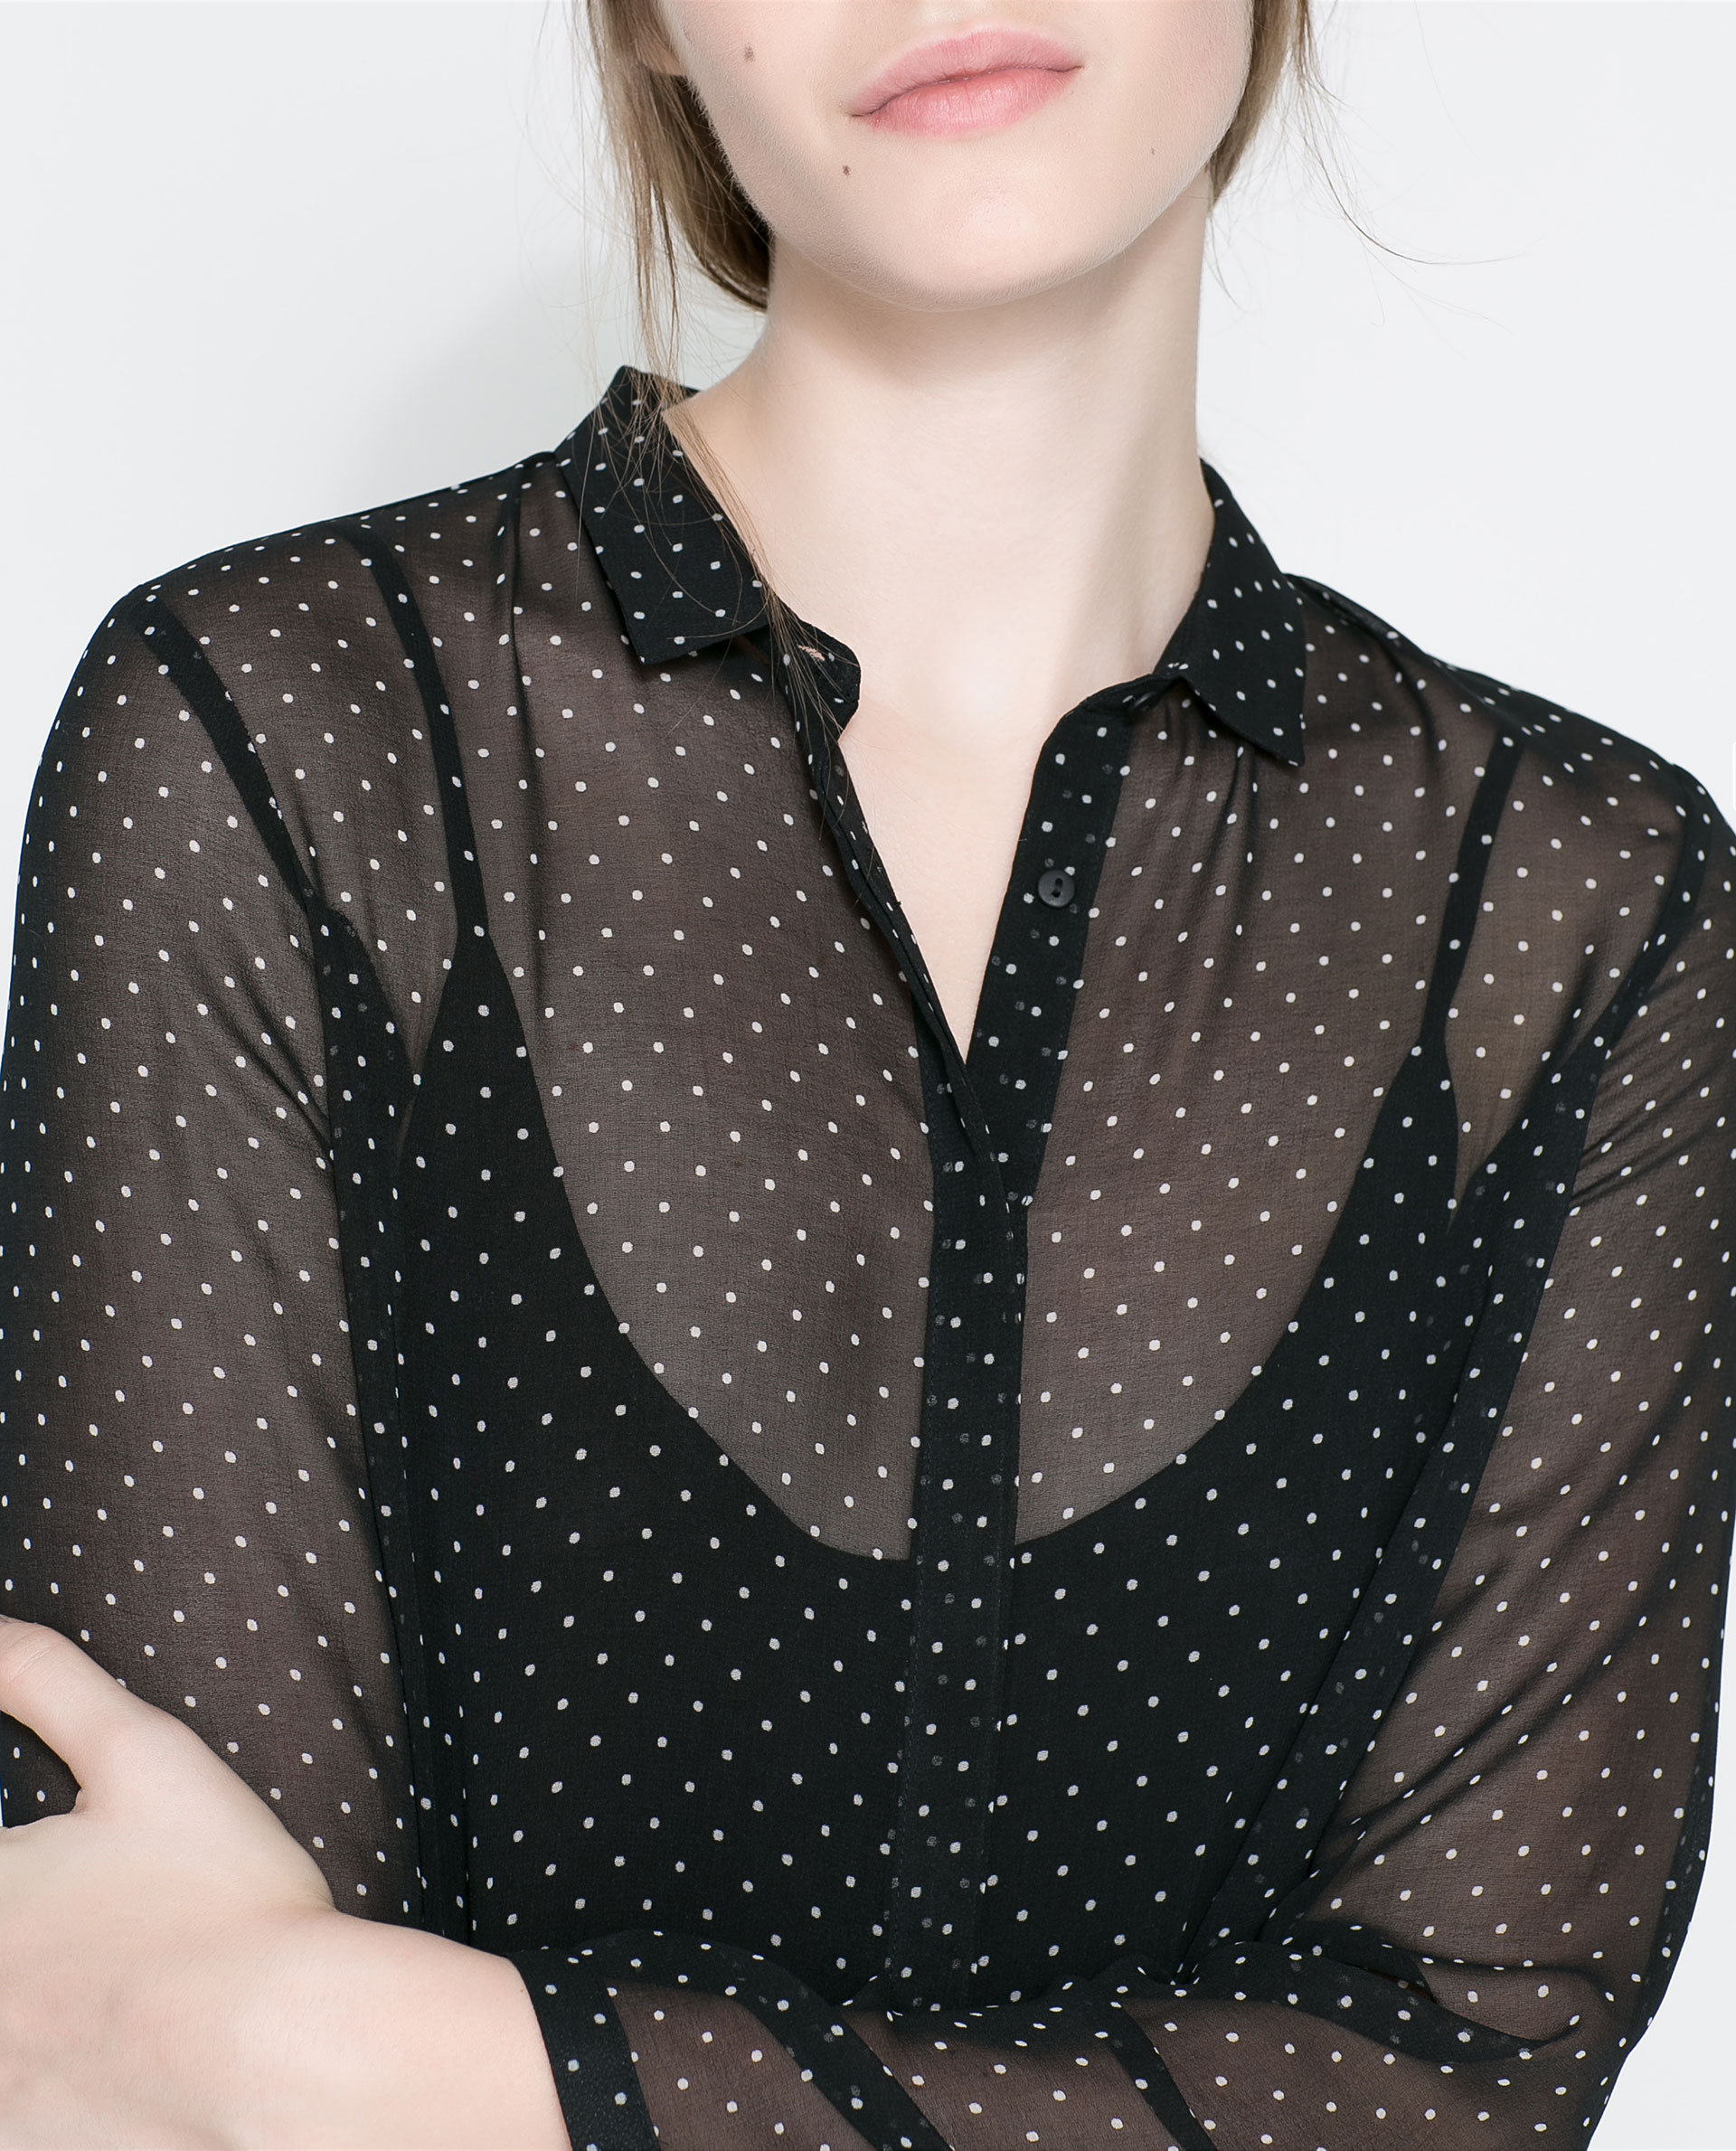 Zara Sheer Black Blouse 30